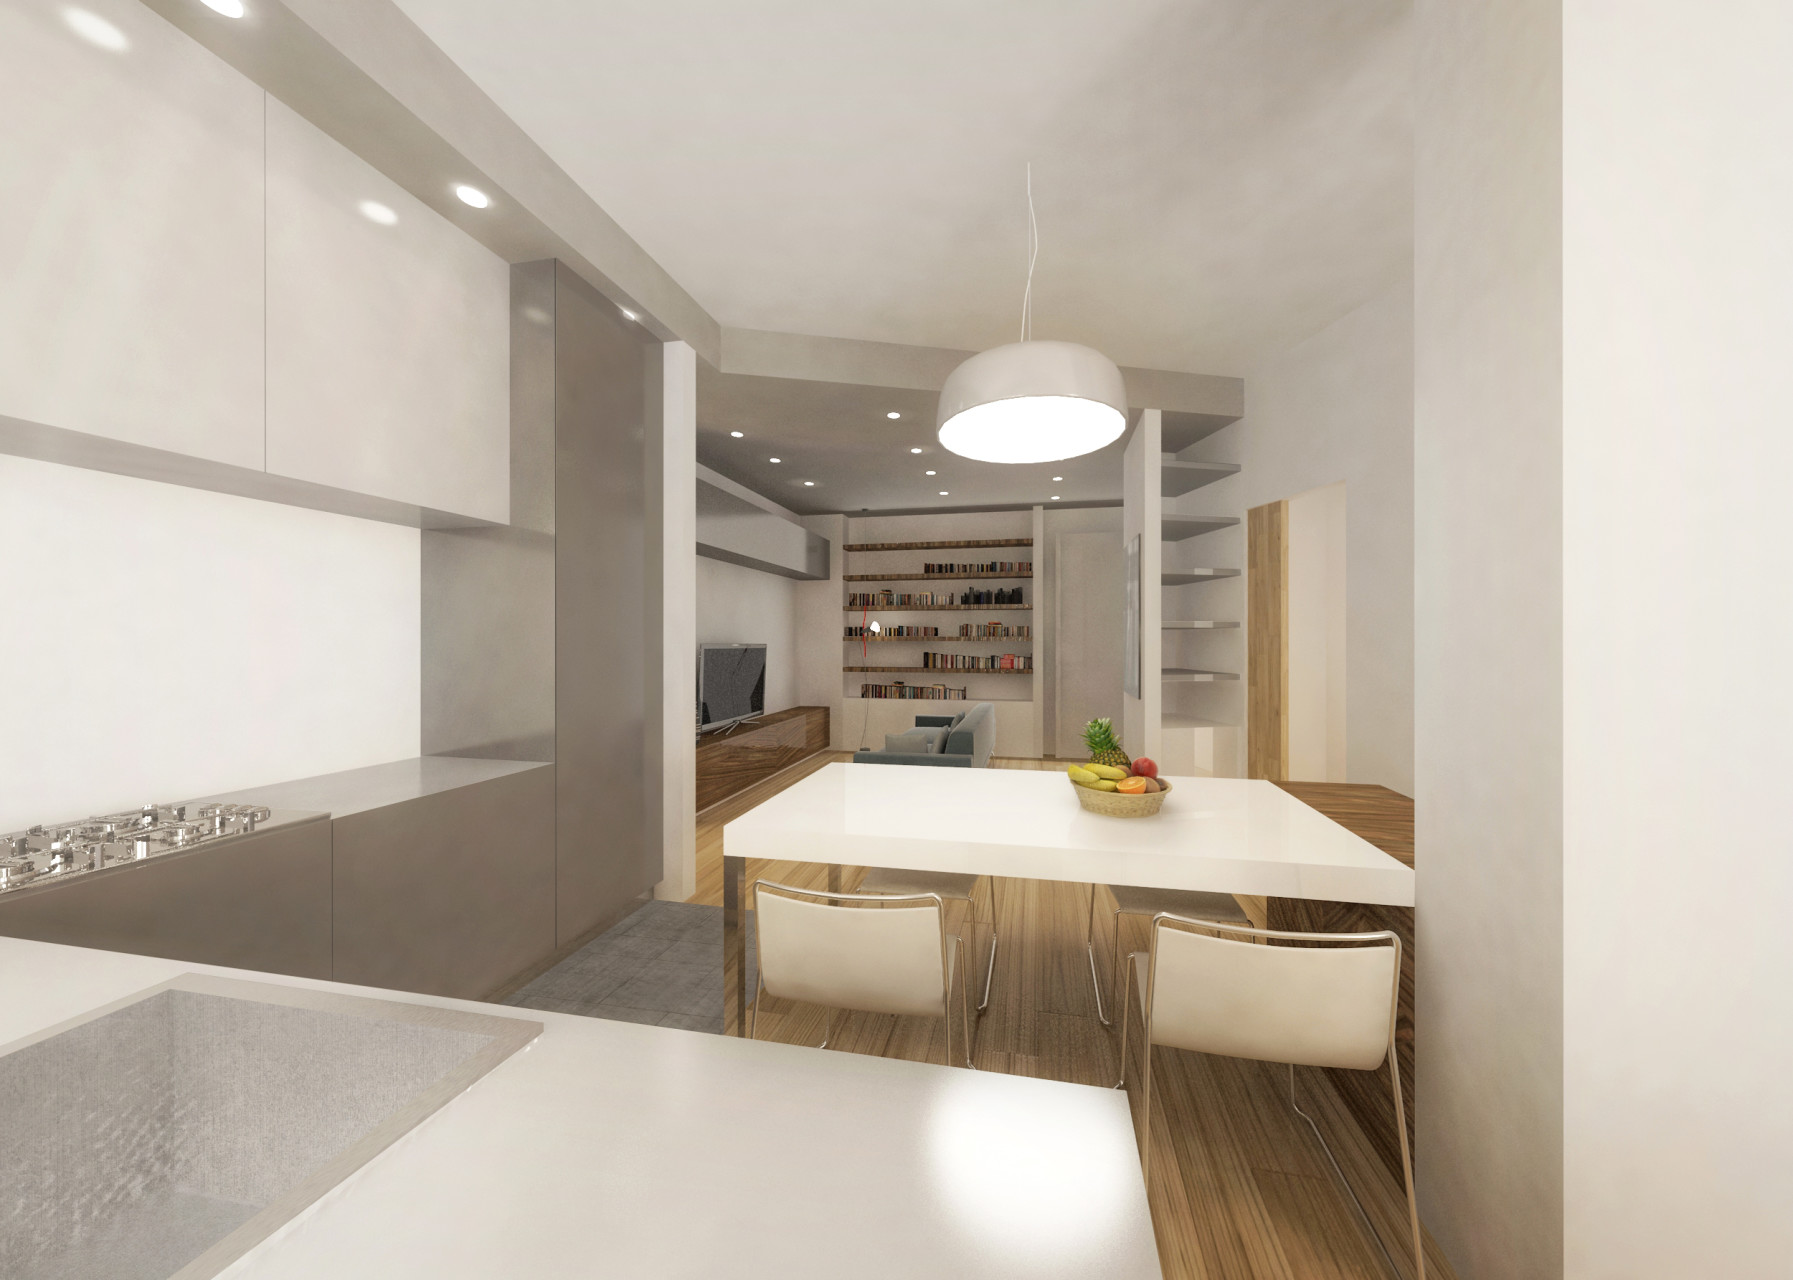 Wisp-Architects-Apartment-Milan 2